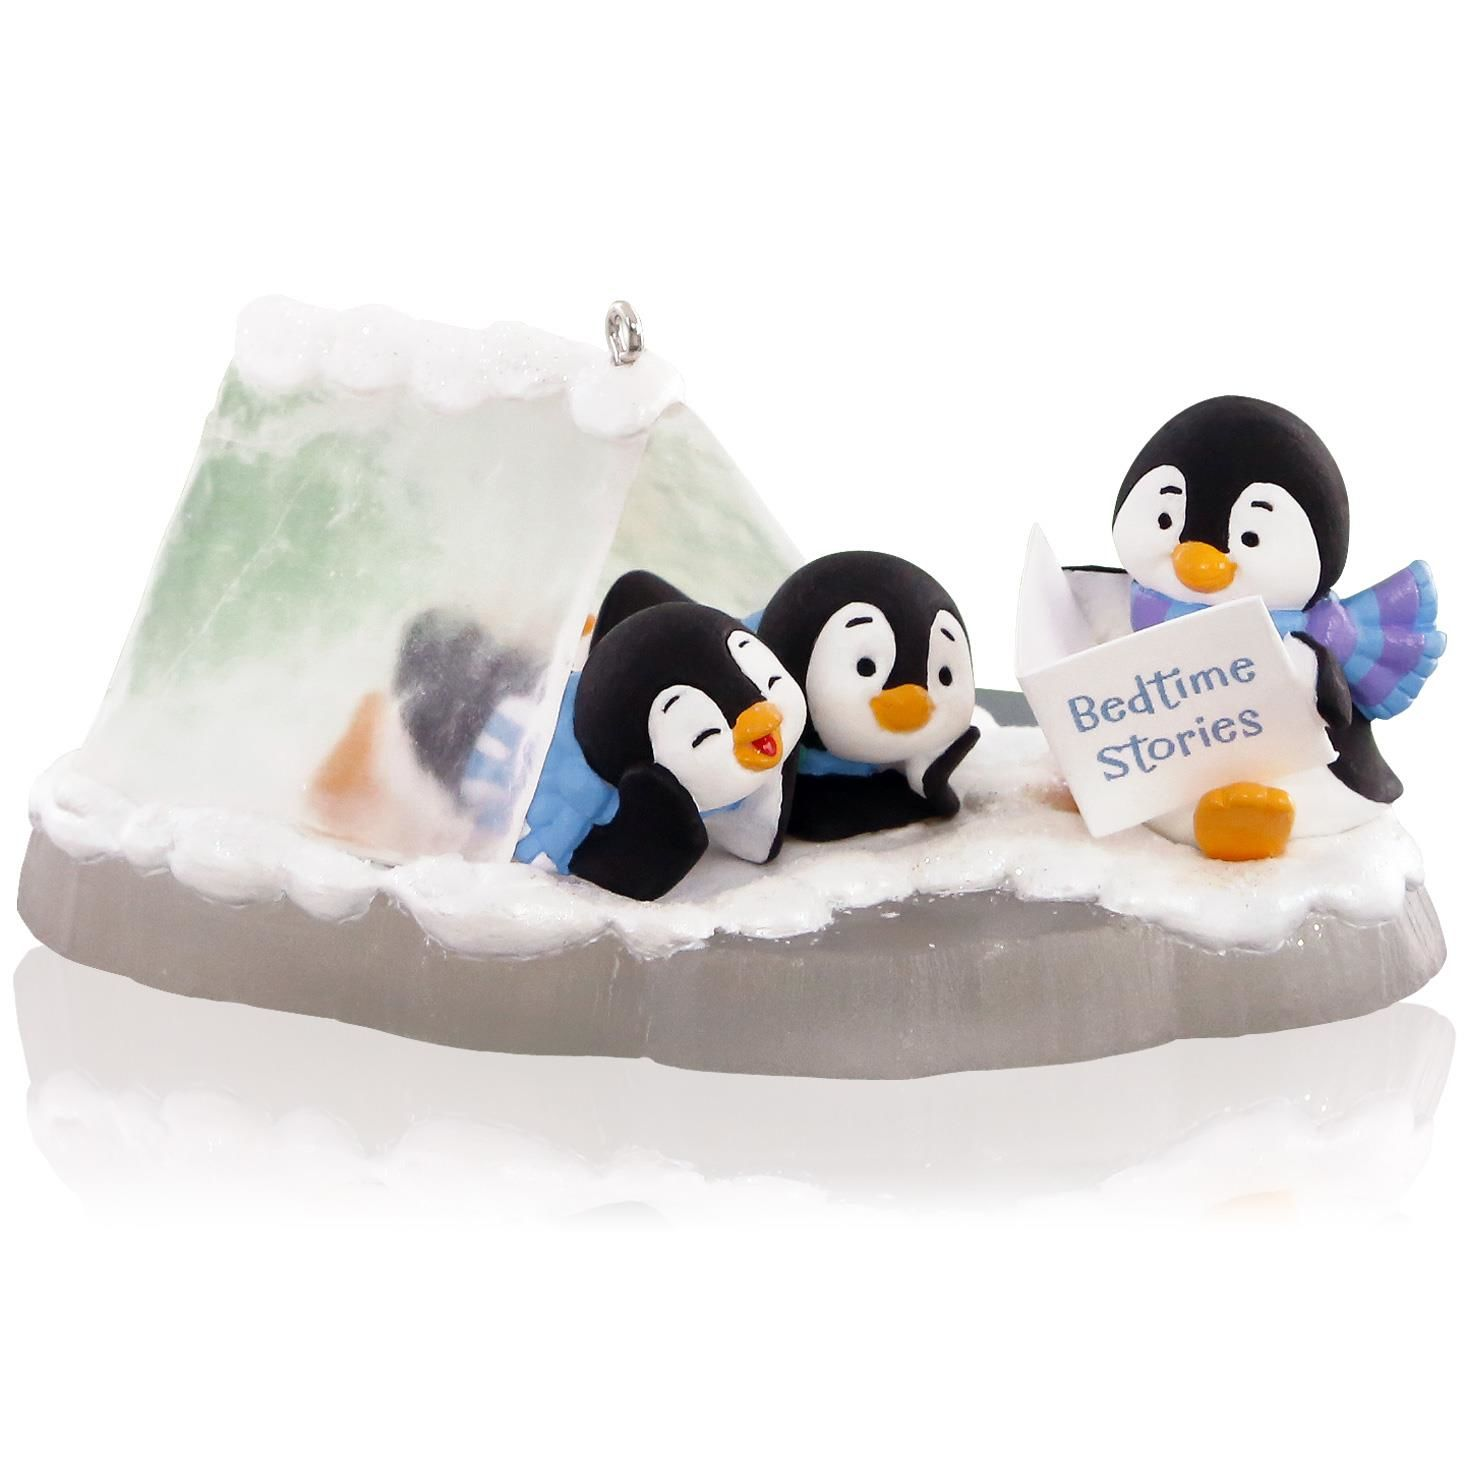 2015 Penguin Tales Hallmark Keepsake Ornament